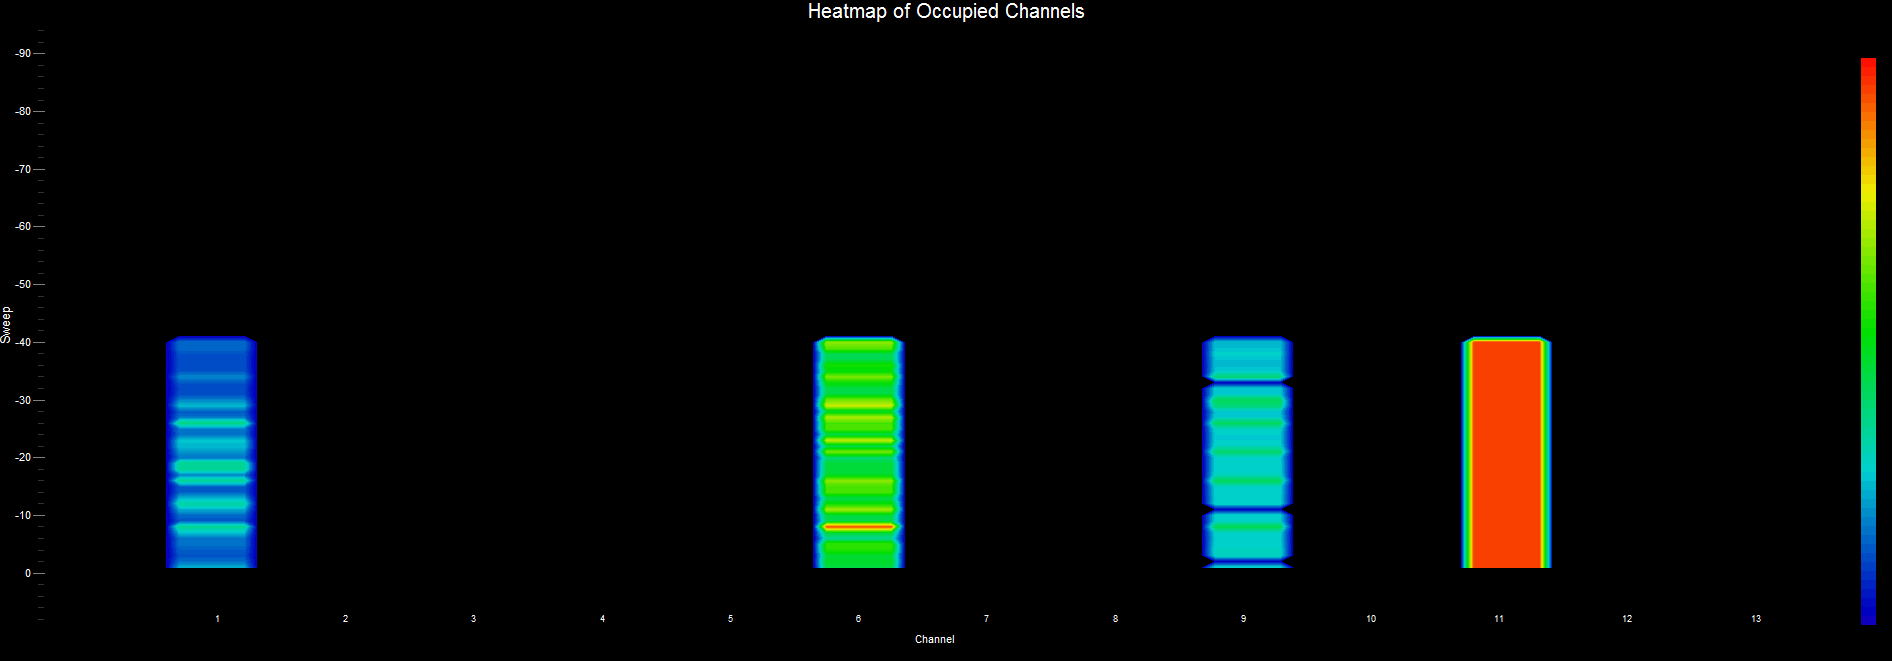 WiFi Surveyor -- Channel Heatmap